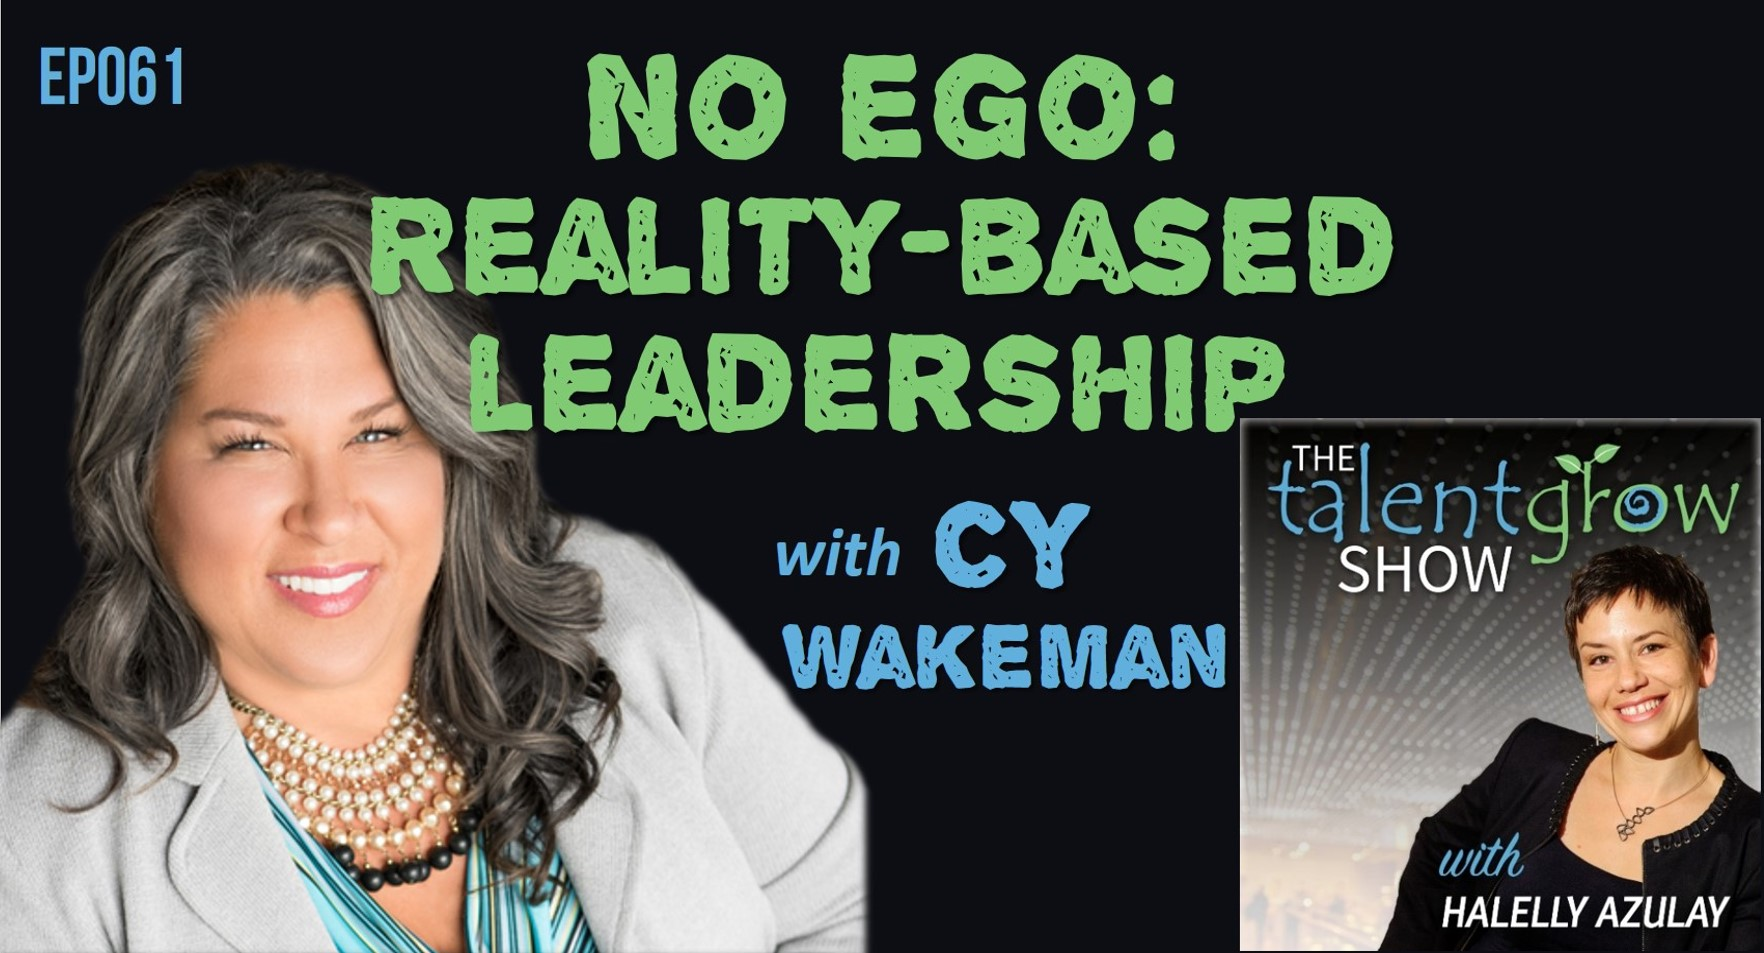 ep061 No Ego Reality Based Leadership with Cy Wakeman on the TalentGrow Show podcast with Halelly Azulay